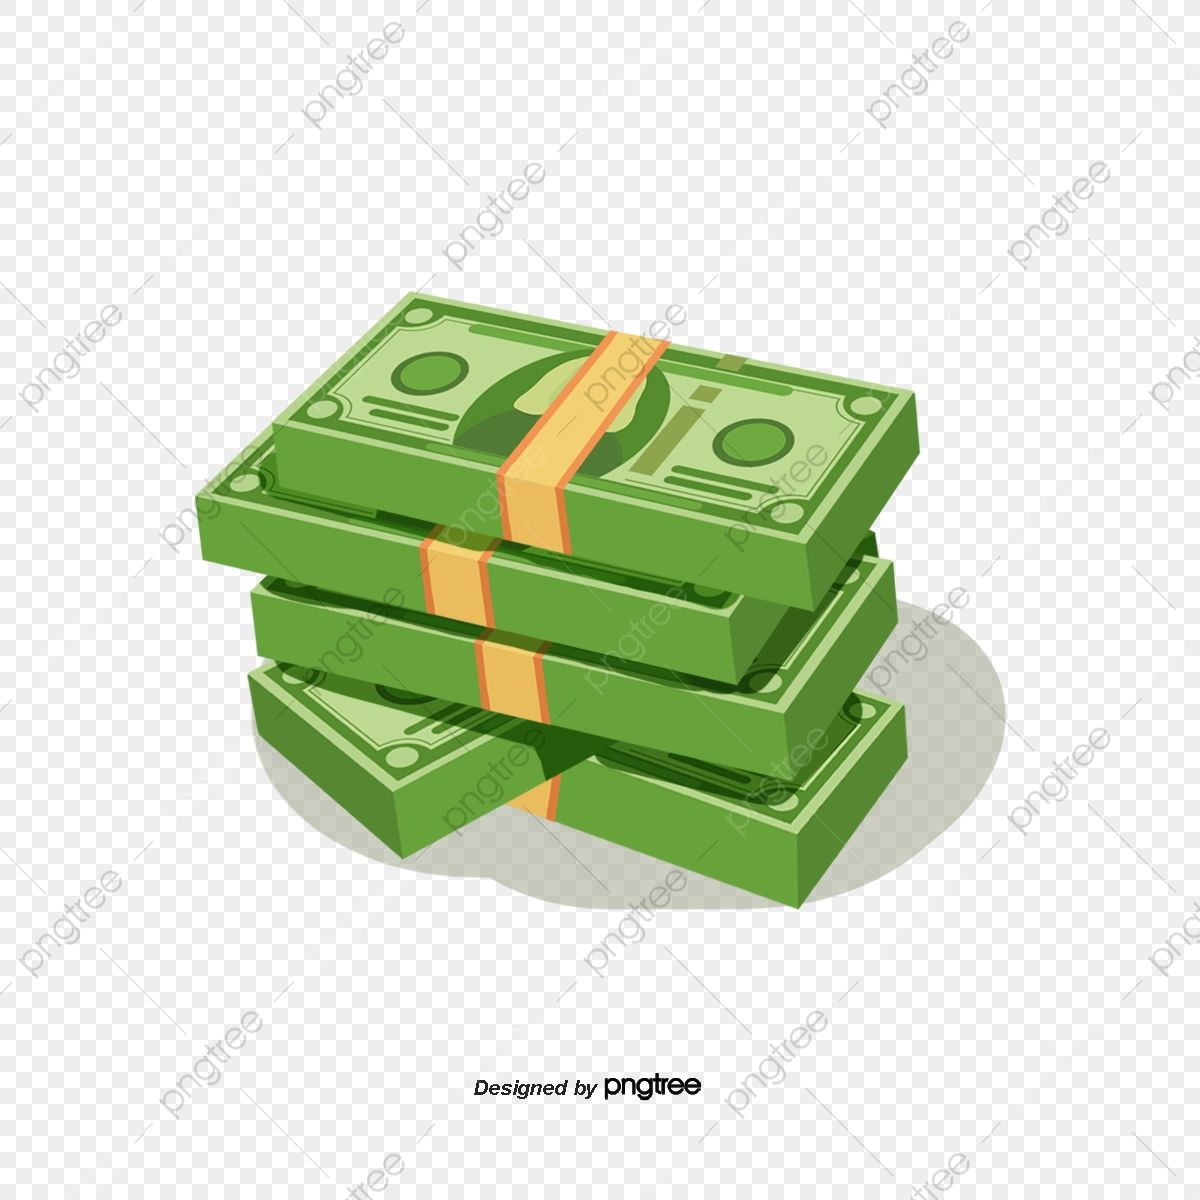 Creative Stereo Dollar Stacked Paper Money Elements Dollar Clipart Stacking Coin Png Transparent Clipart Image And Psd File For Free Download Paper Money Clip Art Background Patterns